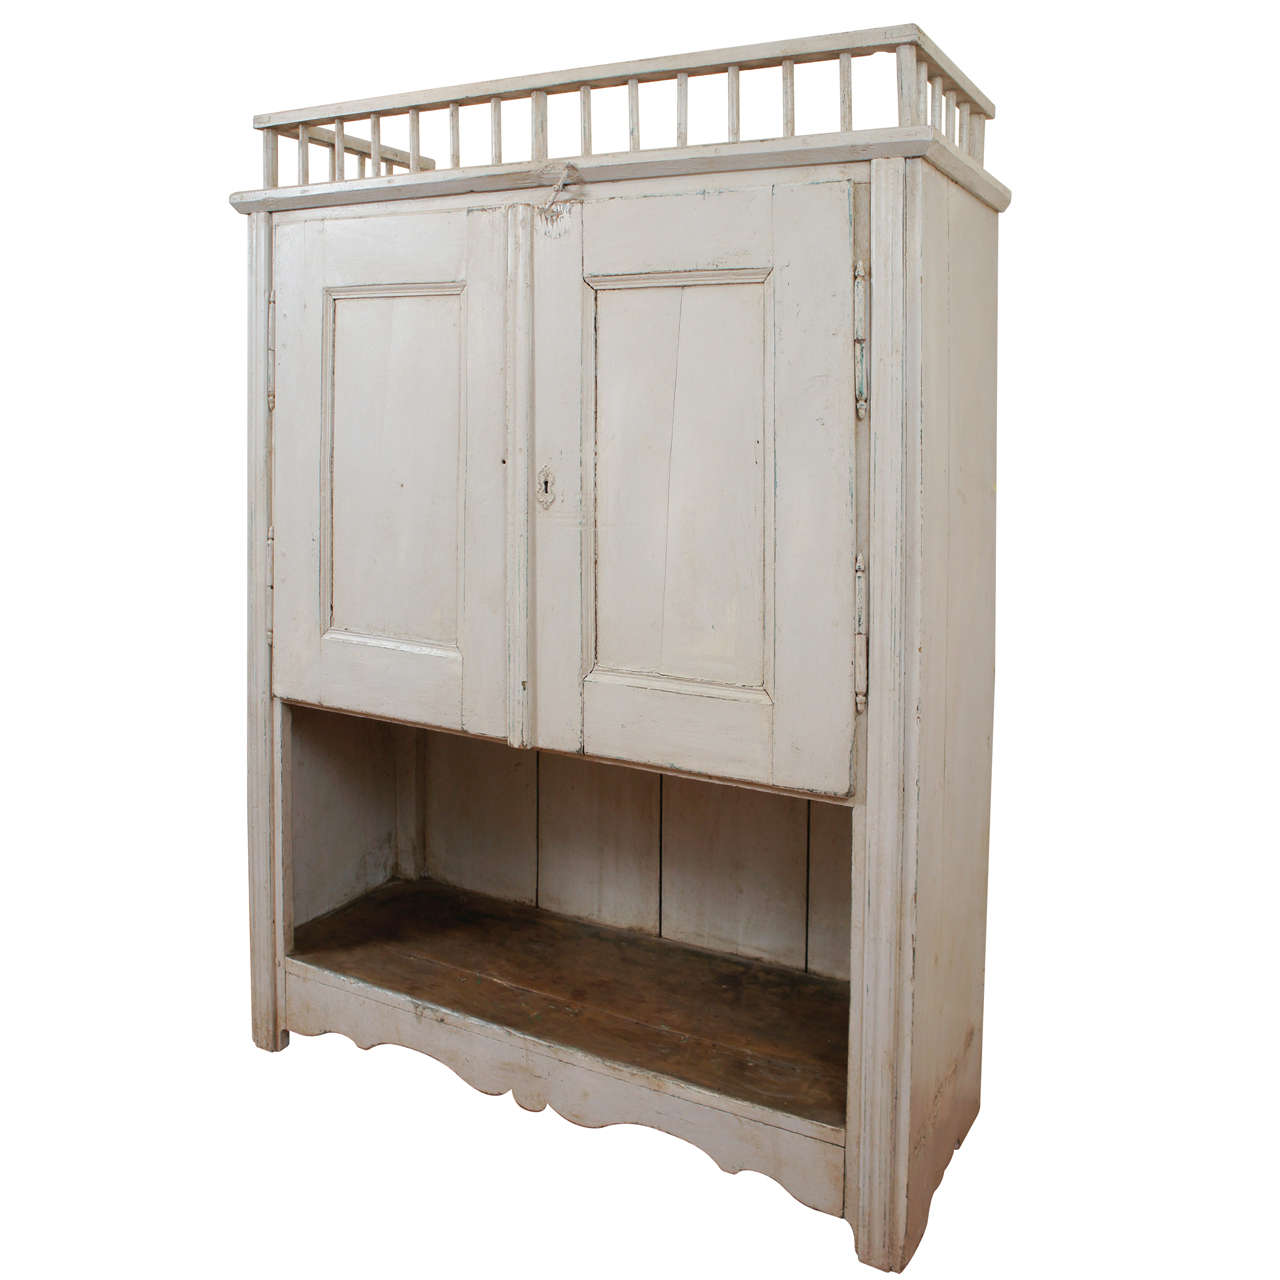 French jam cupboard with gallery at 1stdibs for Sideboard jam